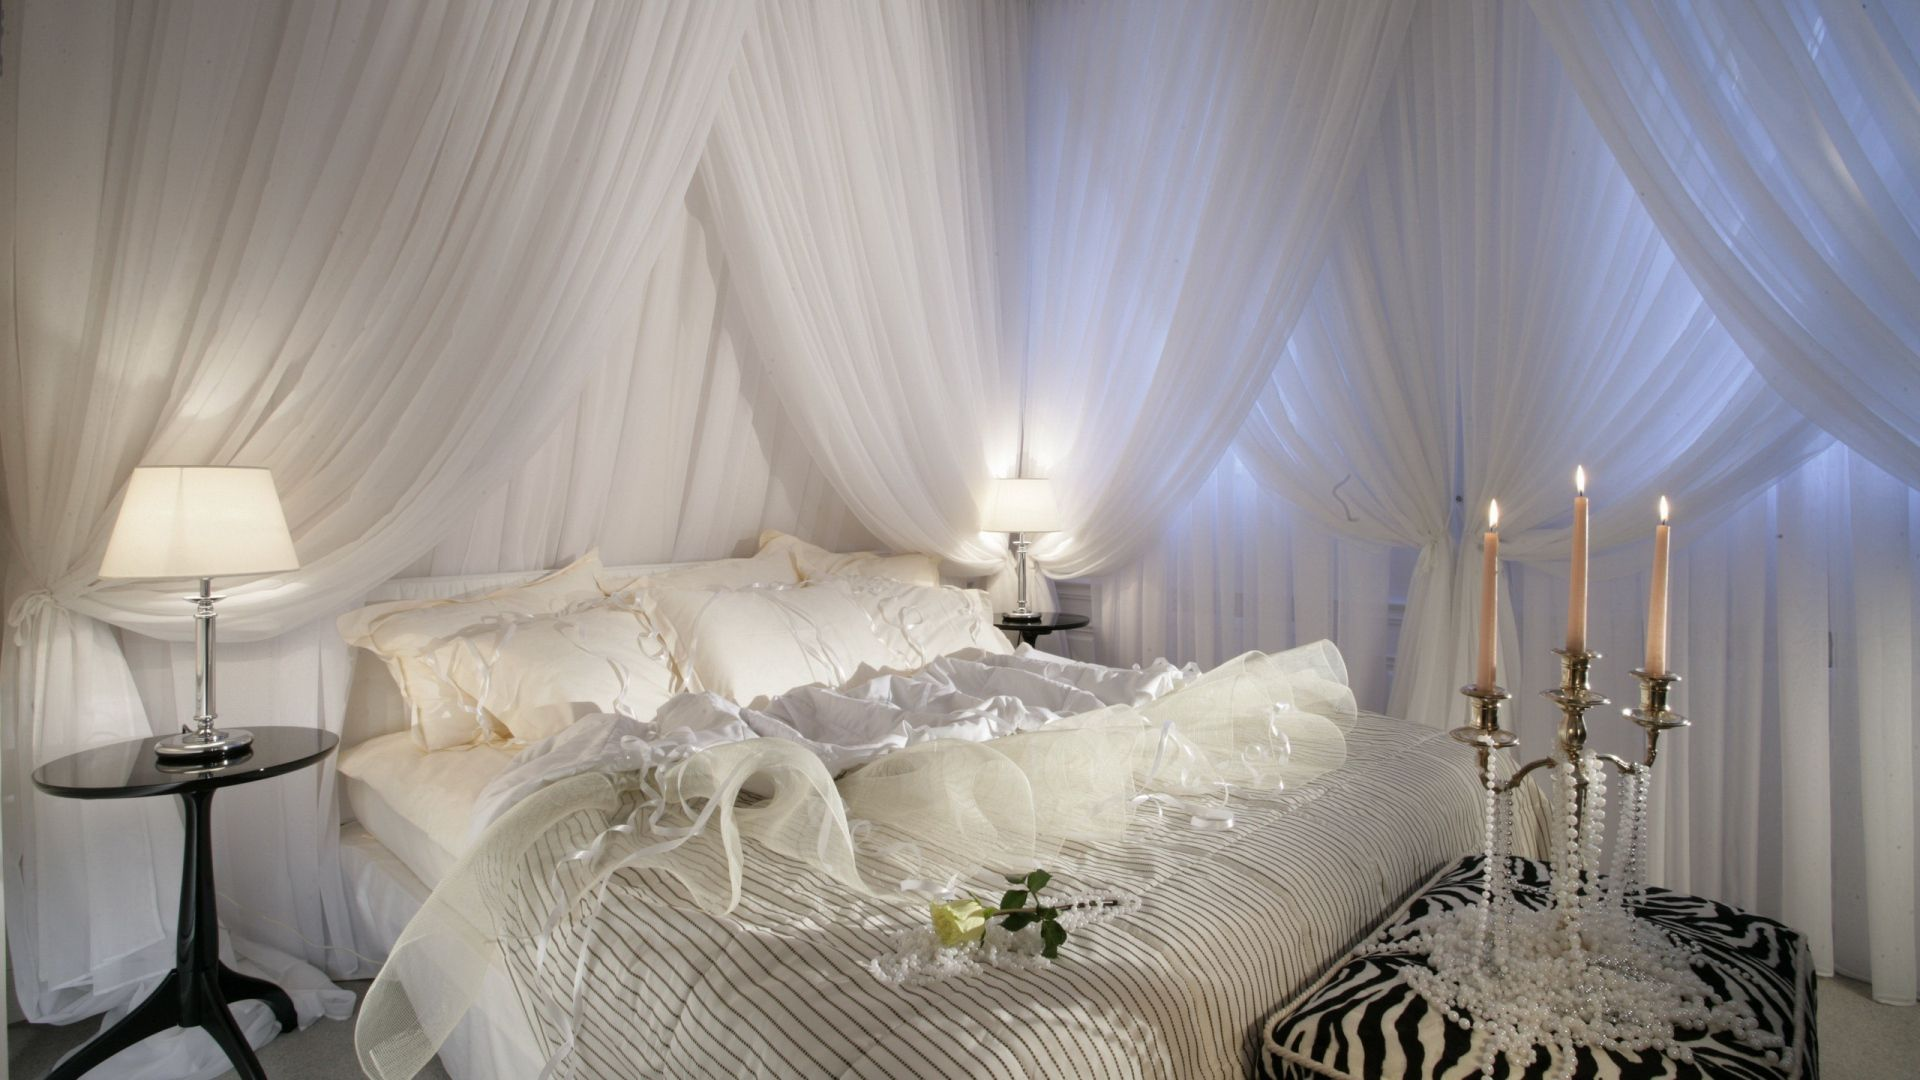 Bedroom, Bed, White Candles  Httpwwwwallpapers4Uorg